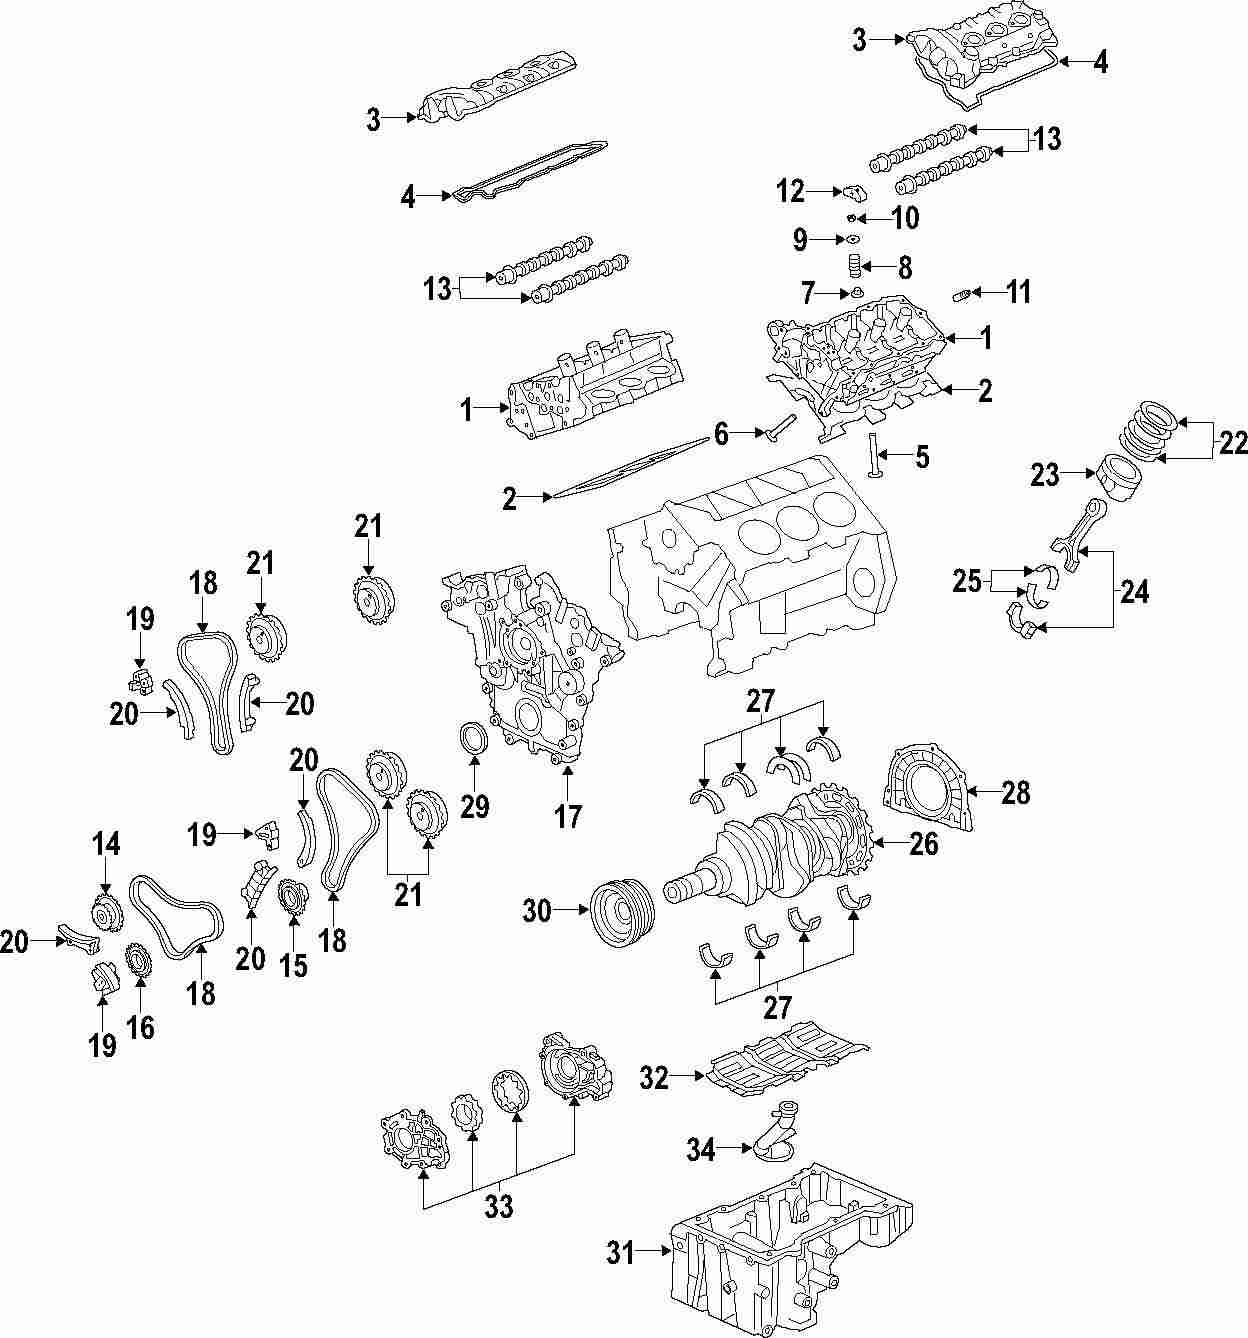 Mopar Direct Parts Dodge Chrysler Jeep Ram Wholesale Retail 2005 3 8 V6 Engine Diagram Genuine Saab Valve Cover Sab 12612437